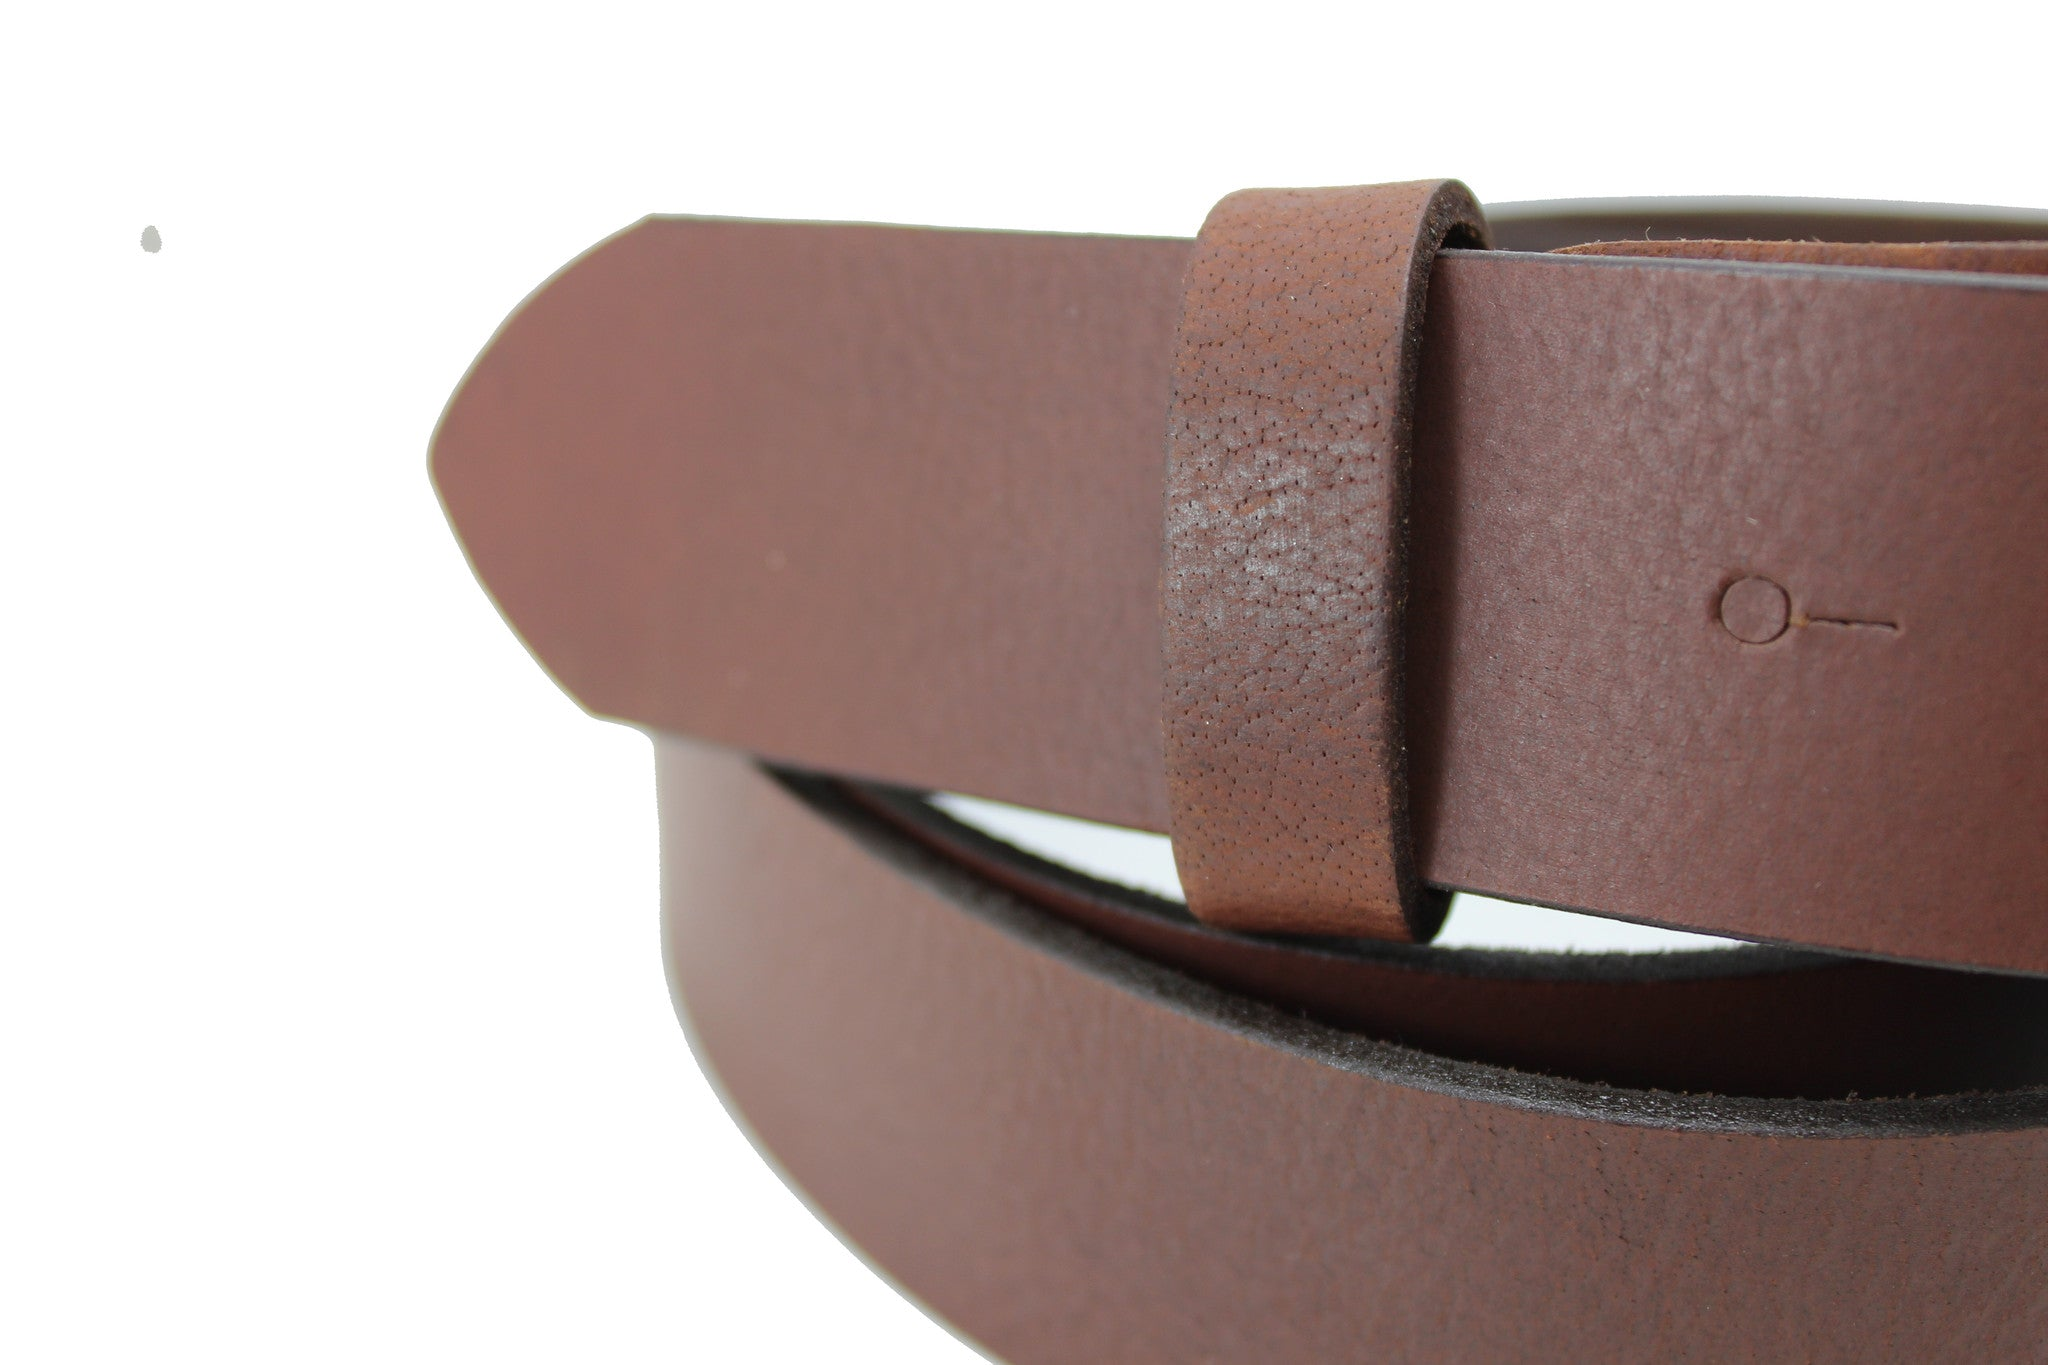 "Men Belt Brown Genuine Leather Soft Buckle Fit Size Plus Waist 4 cm 1.5"" Elegant Standart 2108 - United Split"